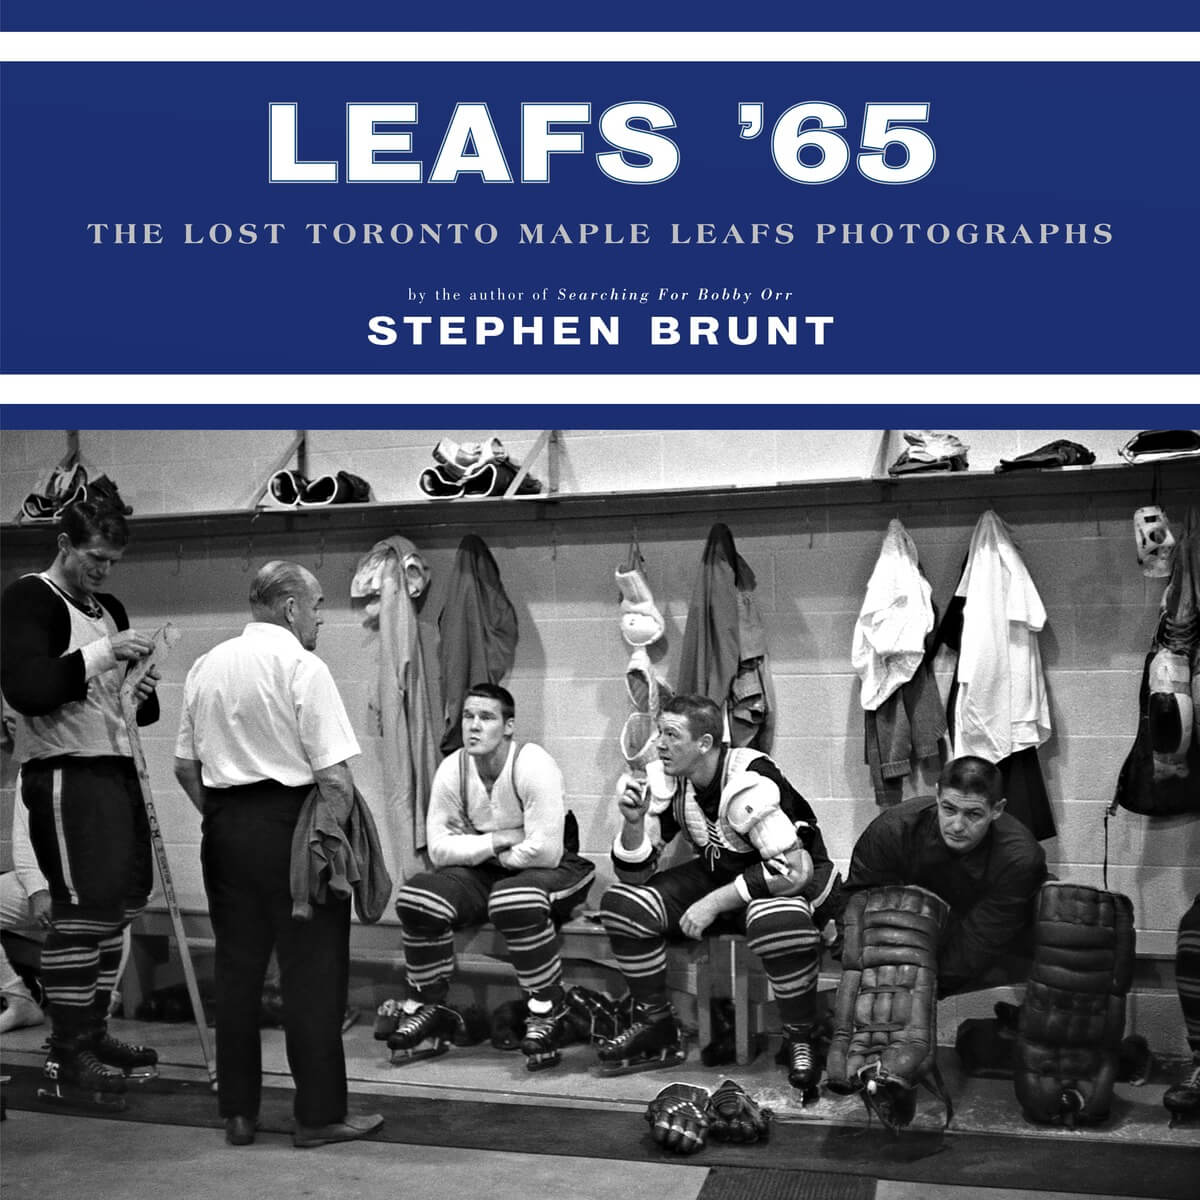 Leafs '65: The Lost Toronto Maple Leafs Photographs, by Stephen Brunt.